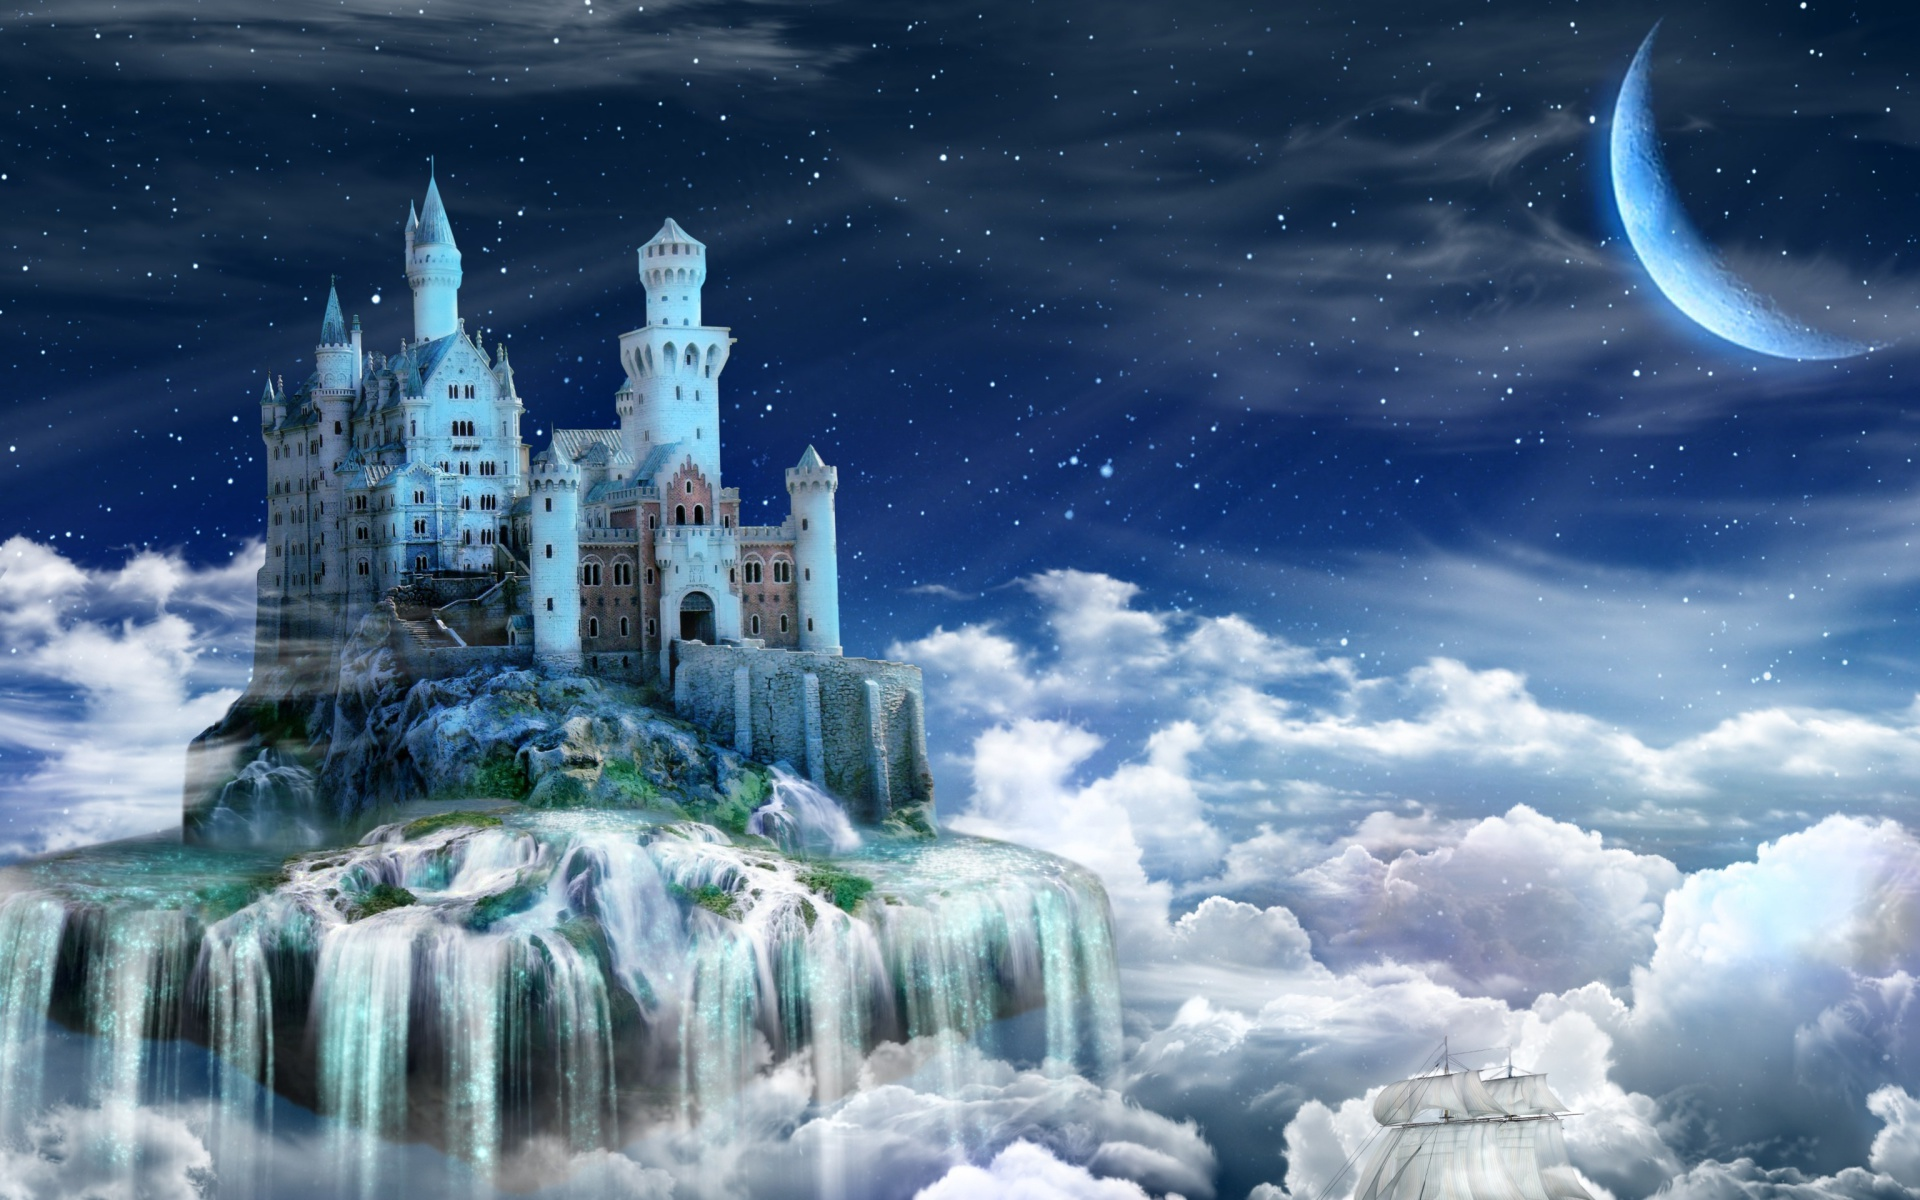 Magic Wallpaper Iphone X Castle On The Clouds Hd Wallpaper Background Image